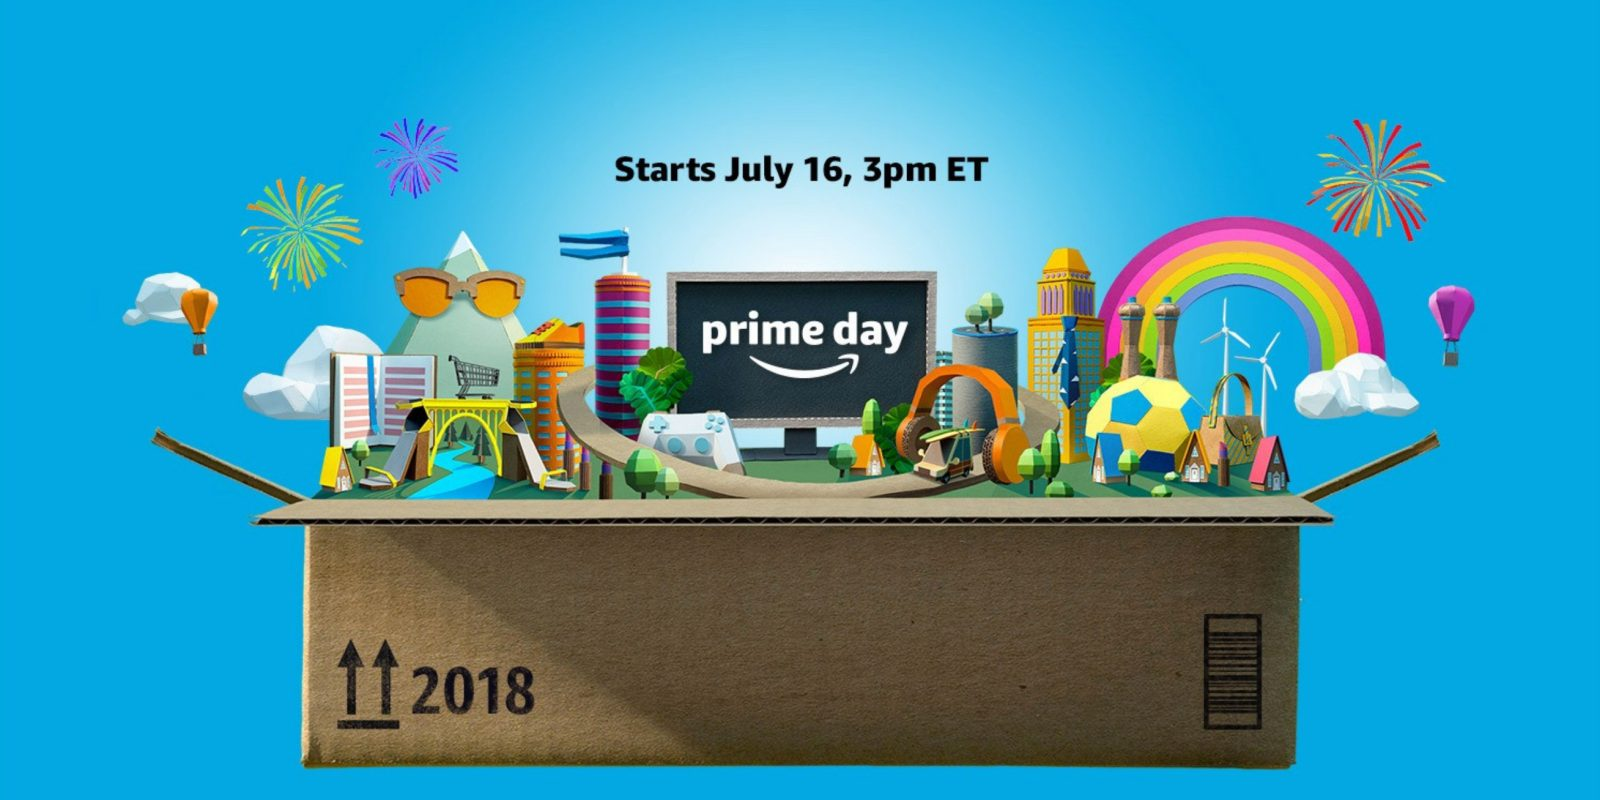 Amazon details upcoming discounts on its in-house brands ahead of ...